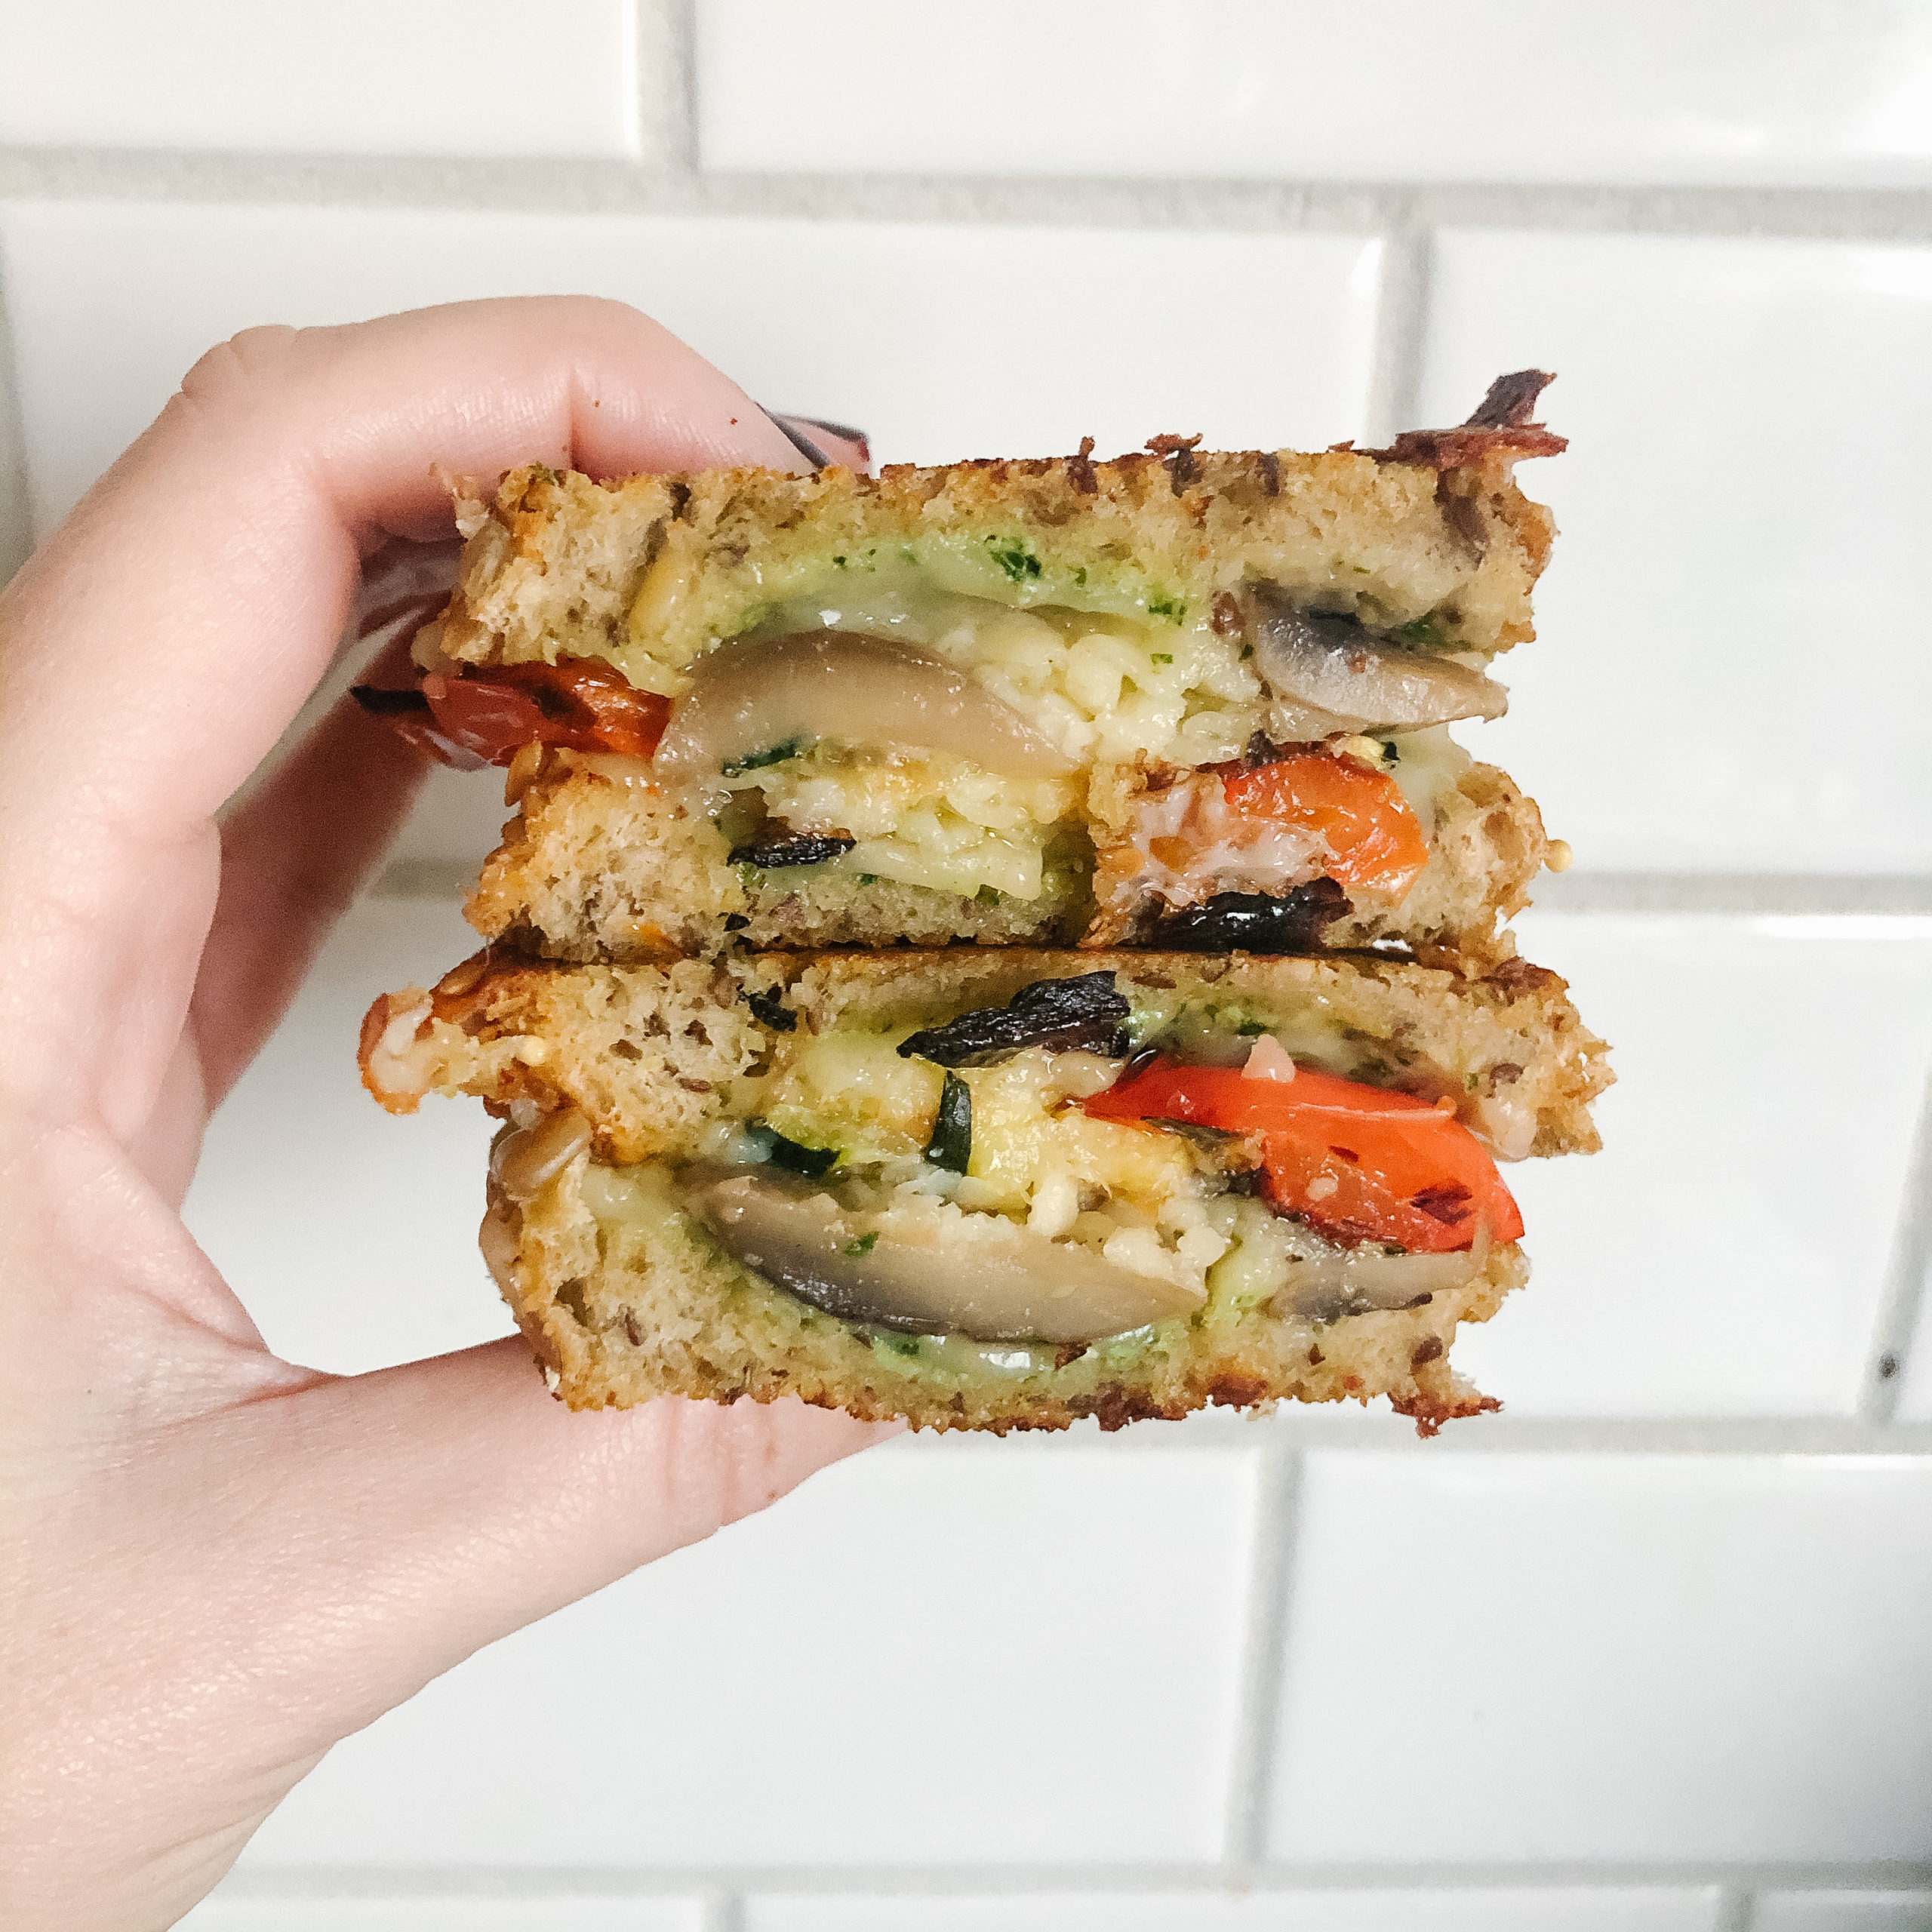 Leftover Roasted Vegetable Grilled Cheese